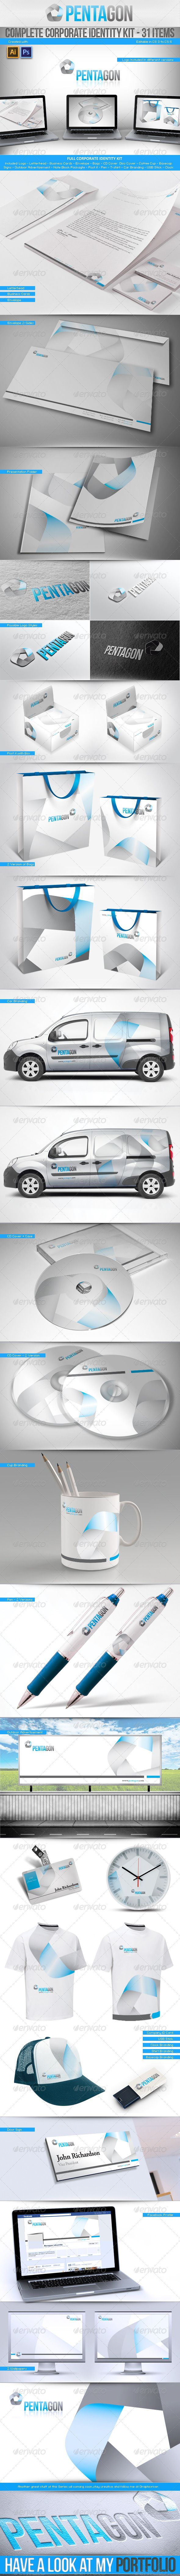 Corporate Identity Kit - Pentagon - 31 Items Get the source files for download: http://graphicriver.net/item/corporate-identity-kit-pentagon-31-items/3137658